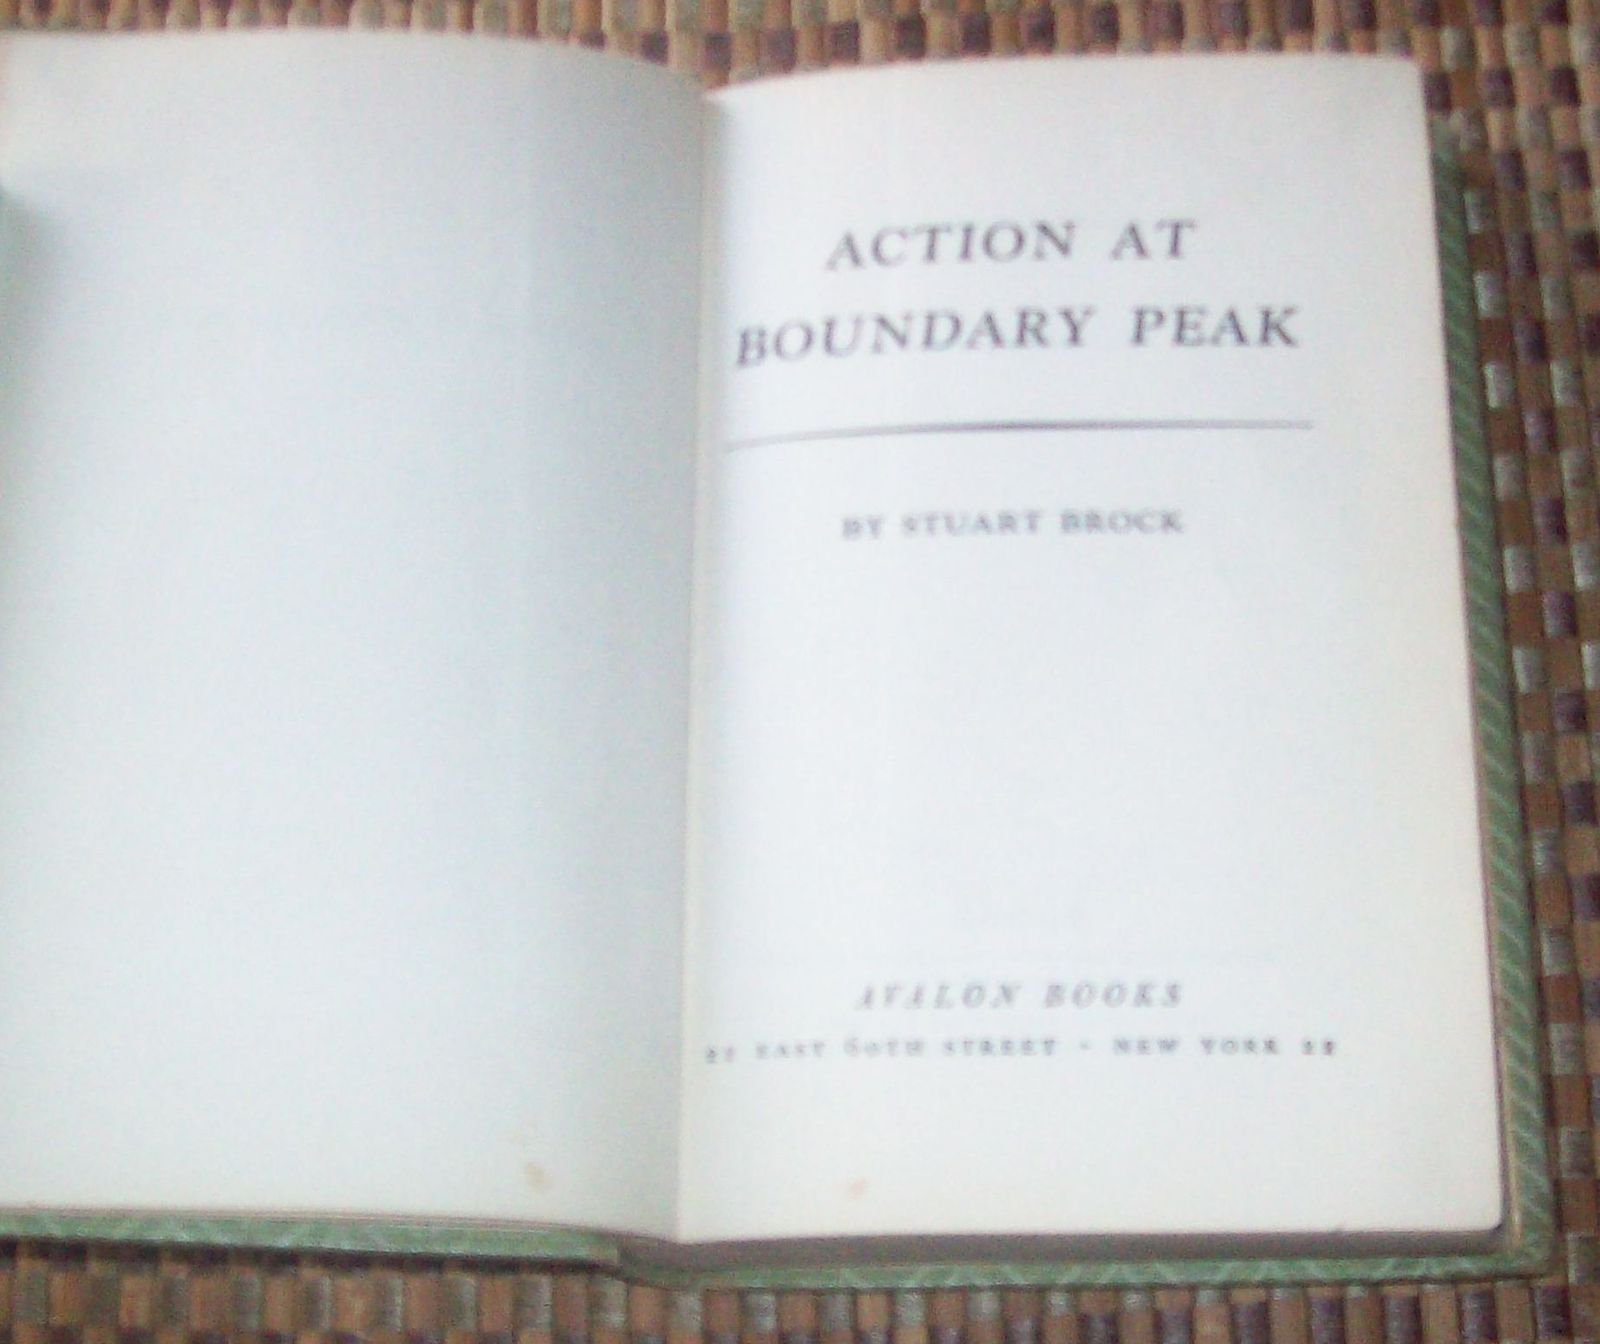 Action at Boundary Peak by Stuart Brock 1955 HB Fort Kootenai Western